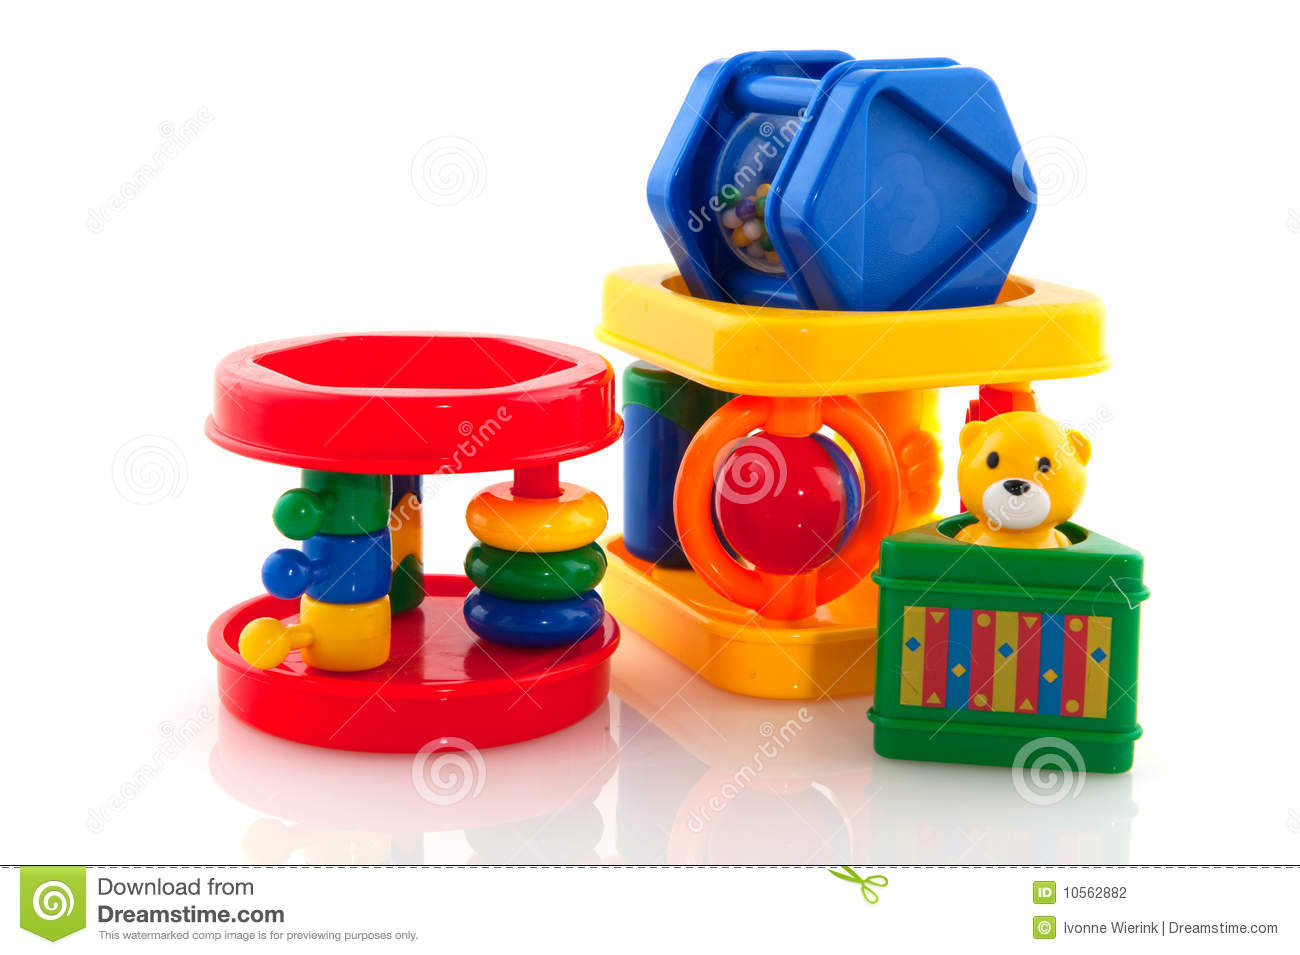 Toddler Toys Photography : Baby toys stock photography cartoondealer